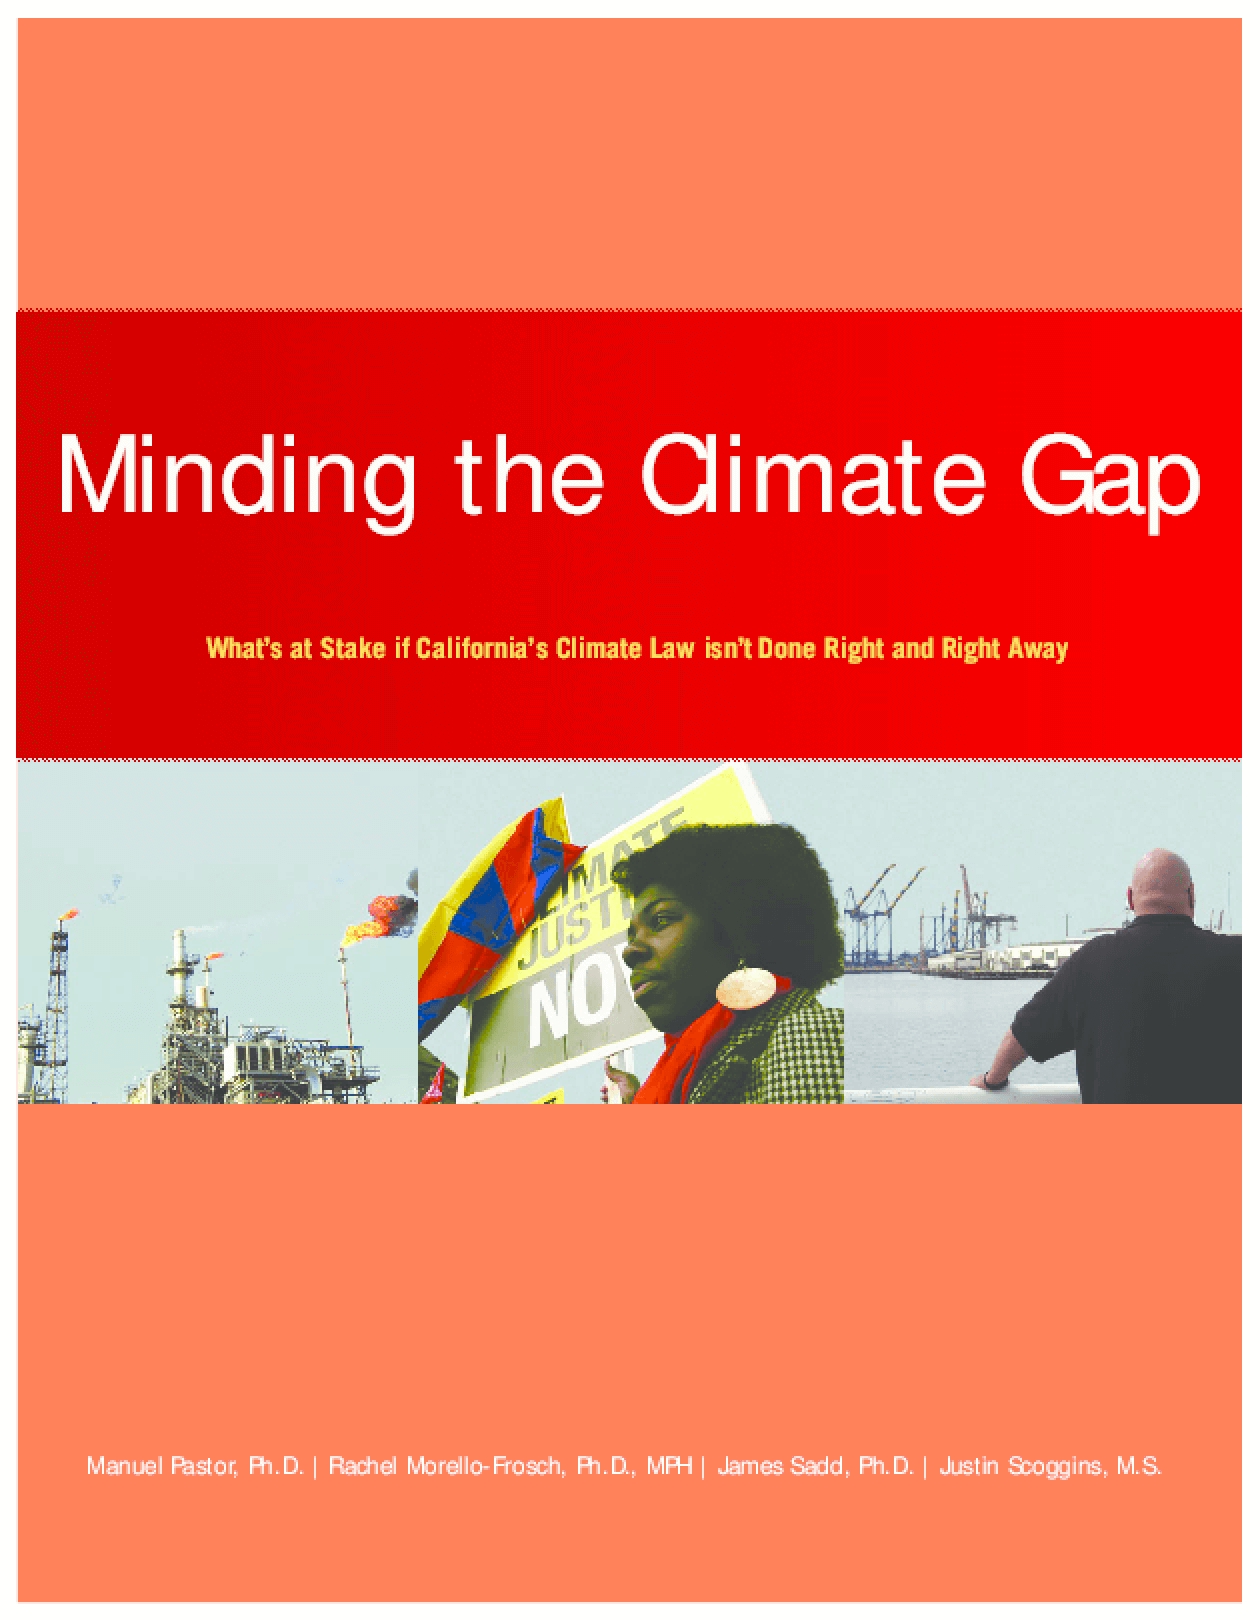 Minding The Climate Gap: What's at Stake if California's Climate Law isn't Done Right and Right Away